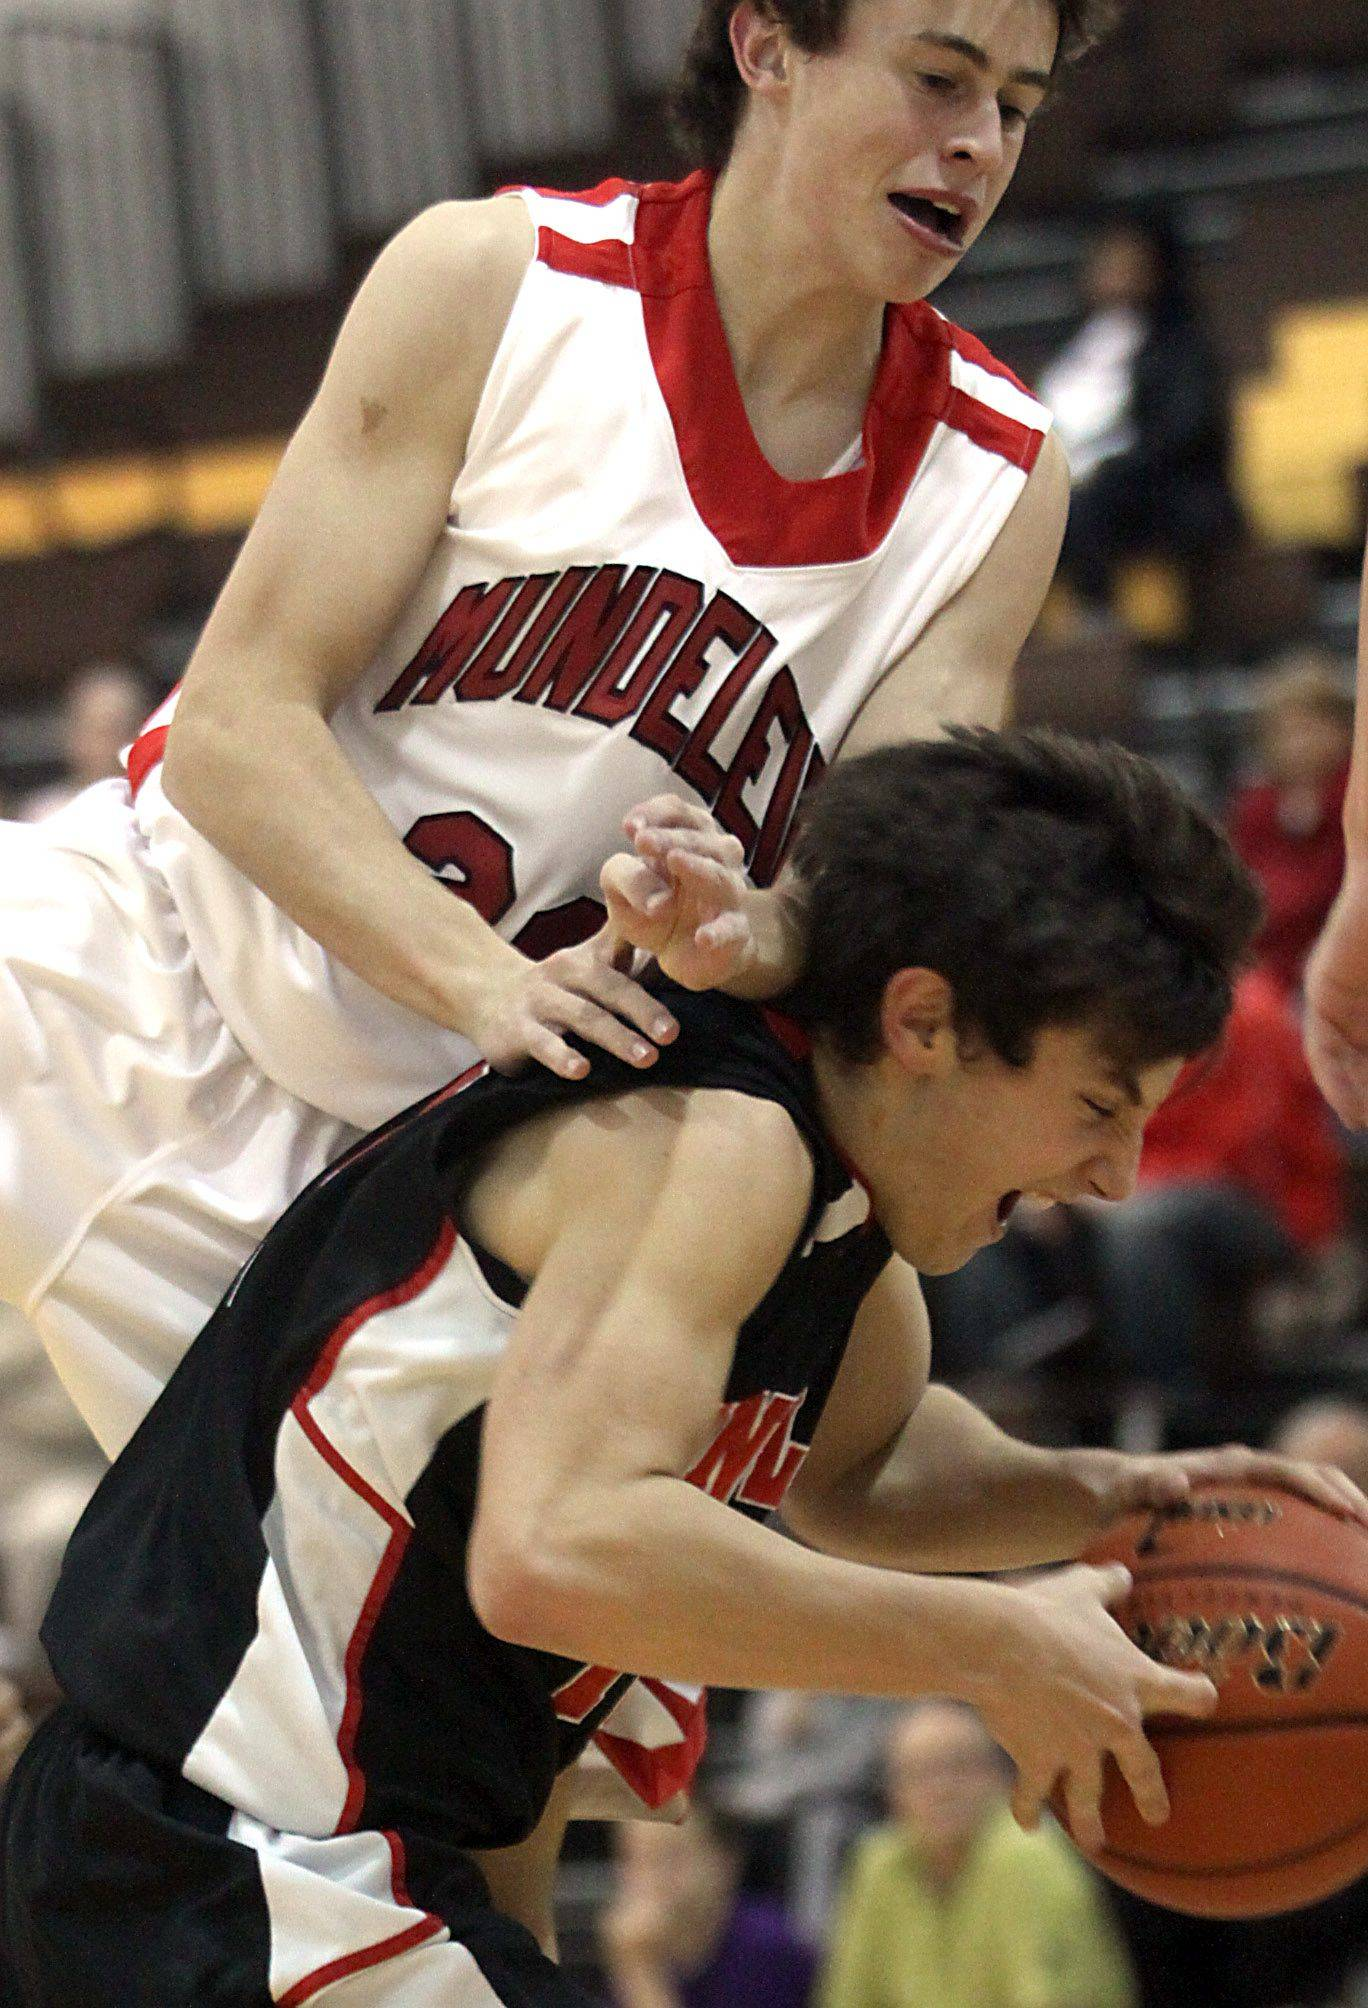 Jake Dachman of Huntley, bottom, tries to keep a handle on the basketball as Nate Brune of Mundelein plays defense during the title game of the Jacobs Holiday Classic Boys Basketball Tournament in Algonquin .